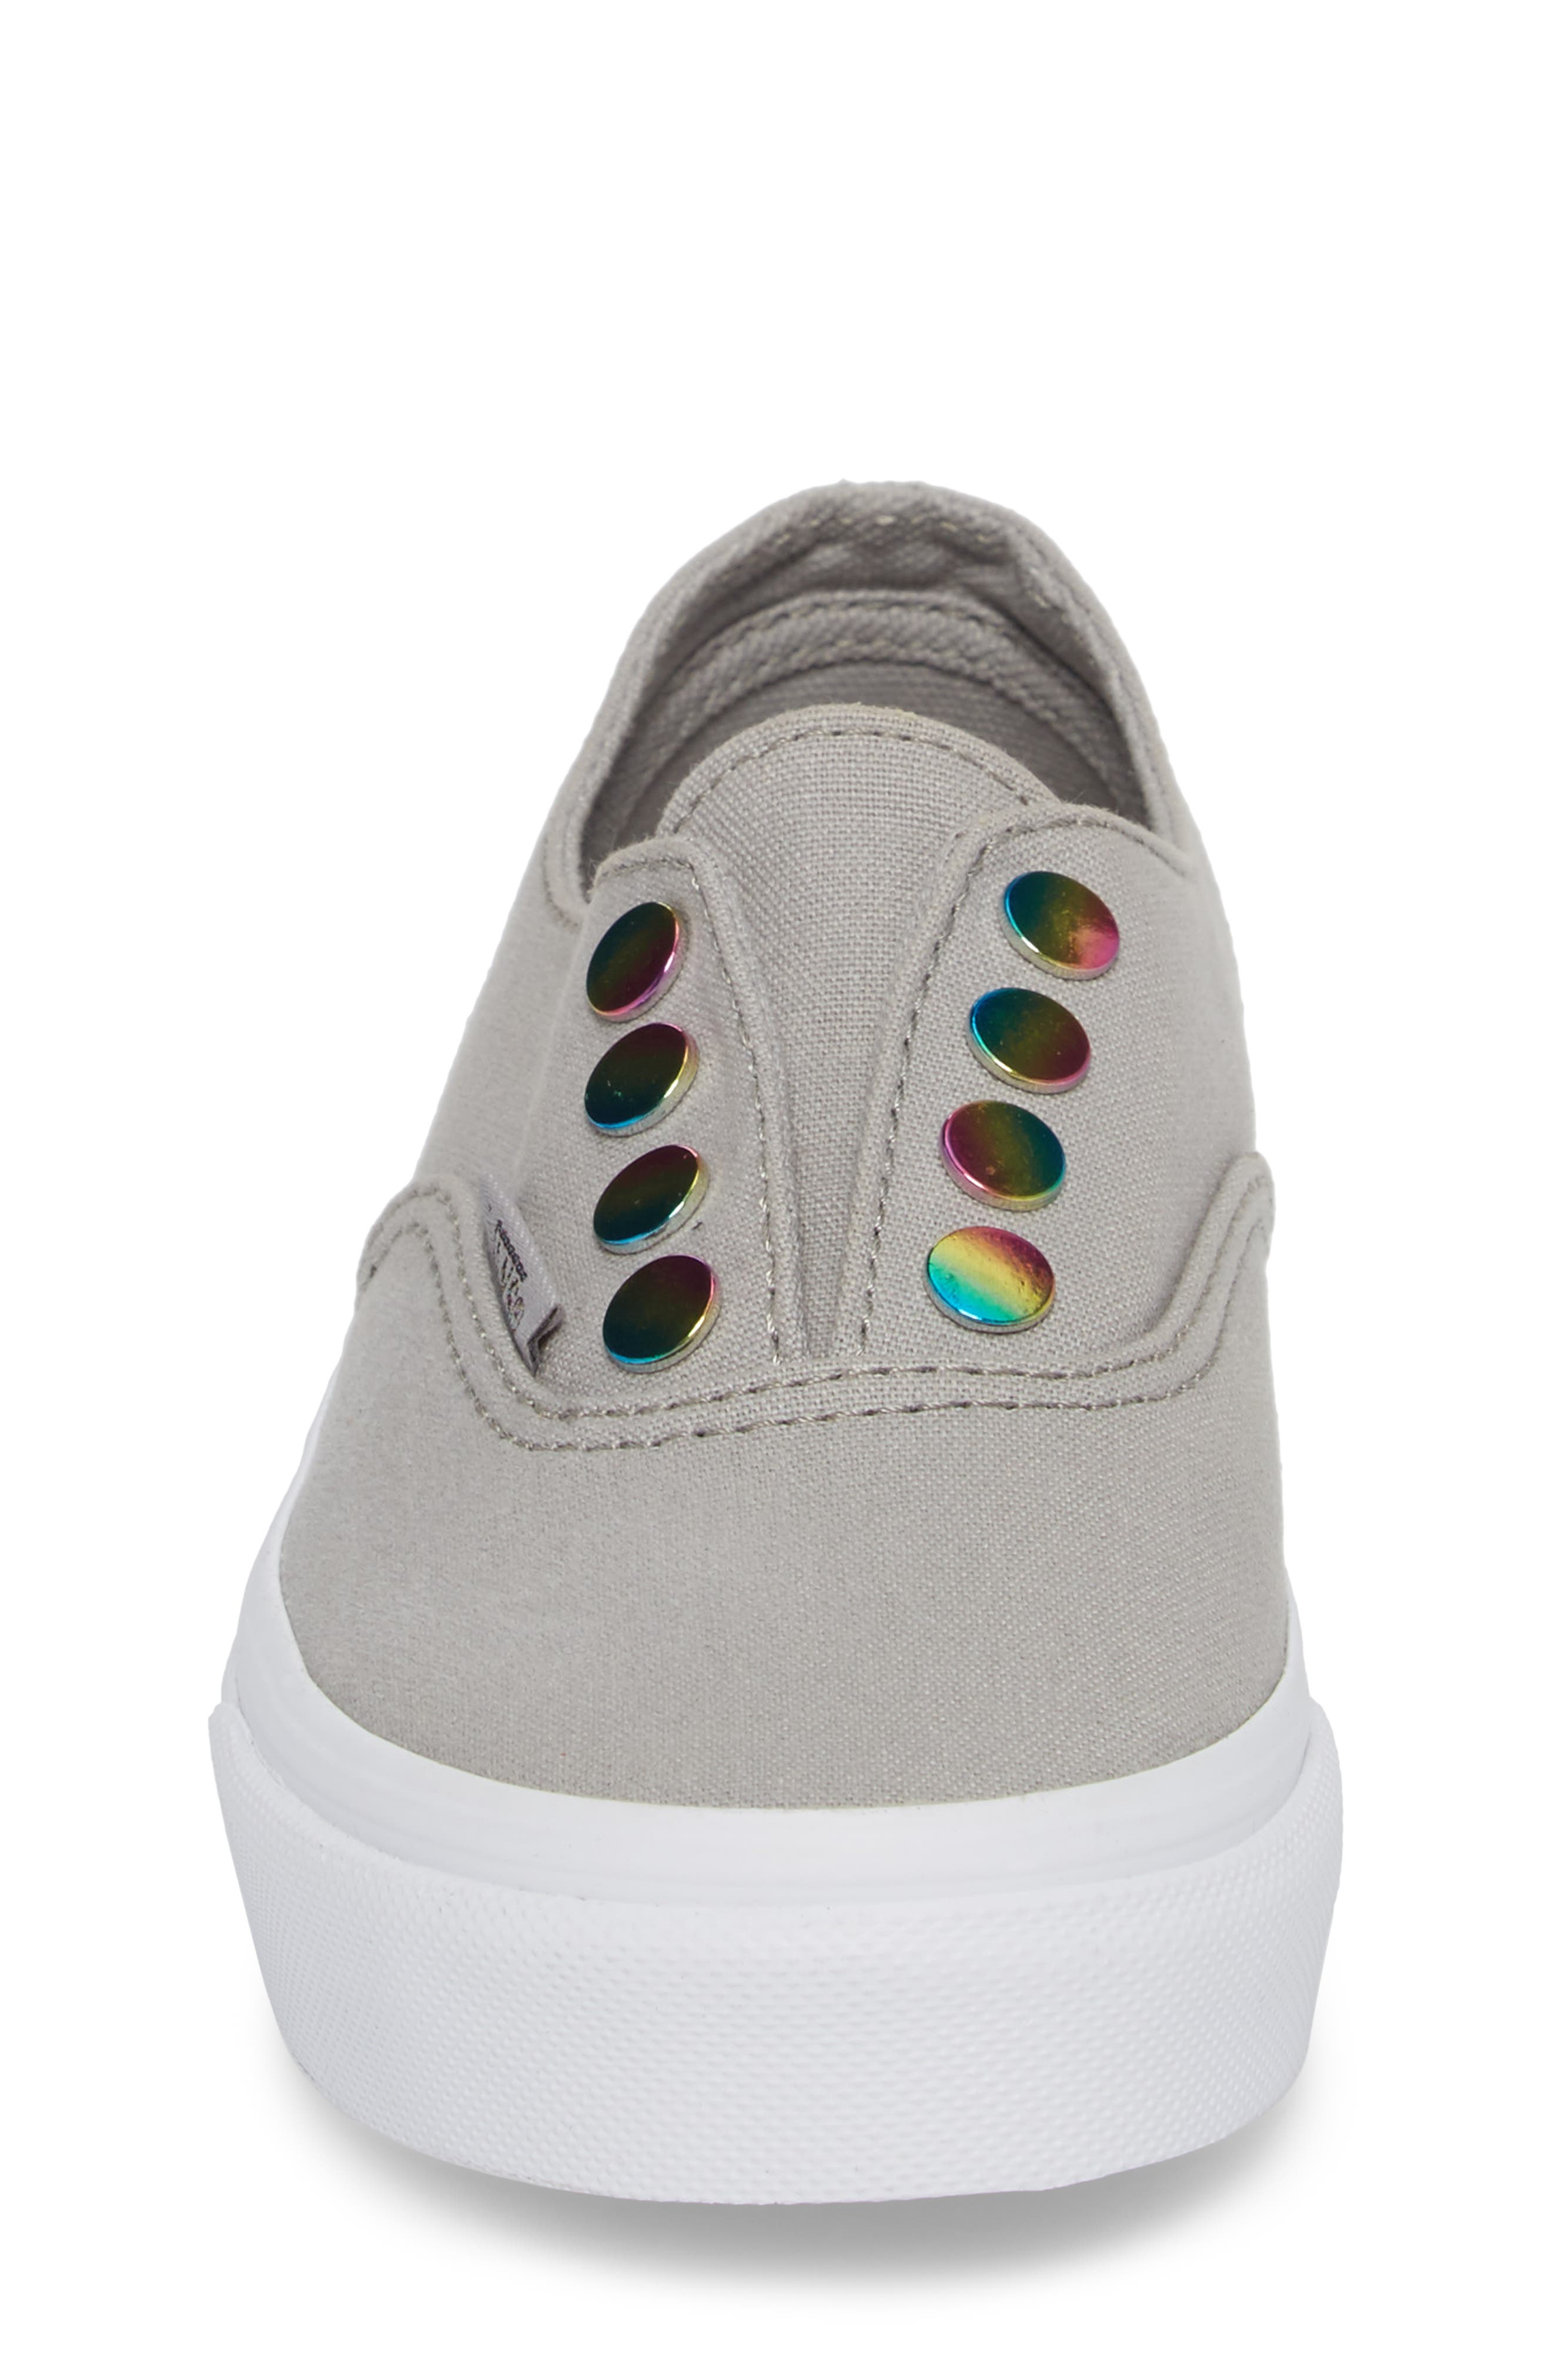 Authentic Gore Slip-On Sneaker,                             Alternate thumbnail 4, color,                             Drizzle/ Rainbow Eyelet